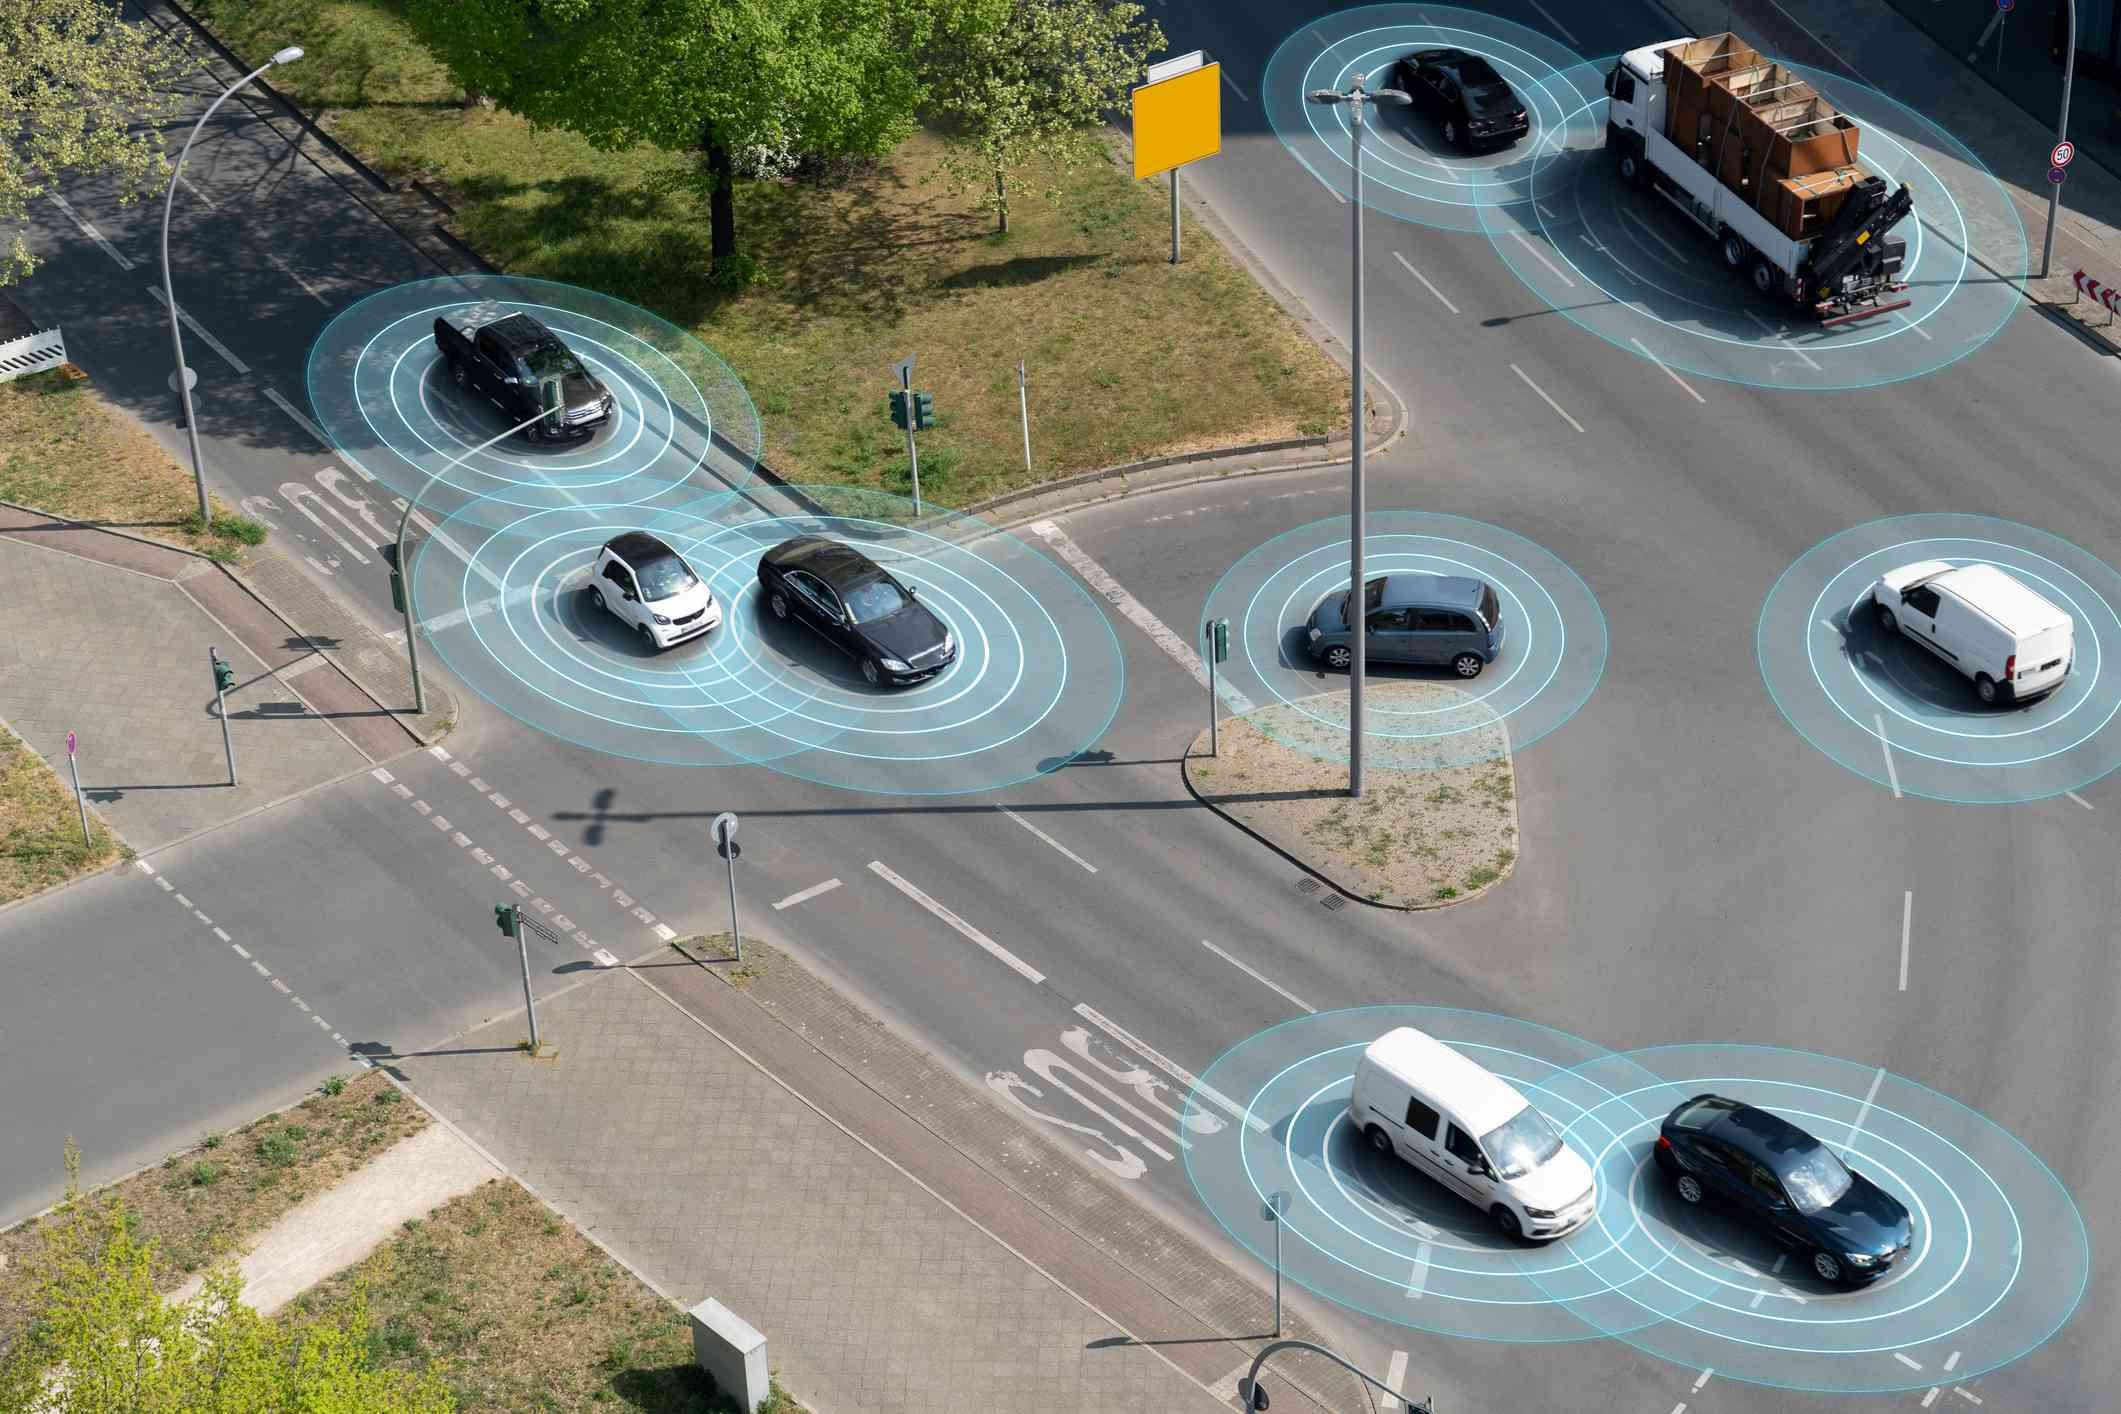 Self-driving vehicles using radar and vision to navigate